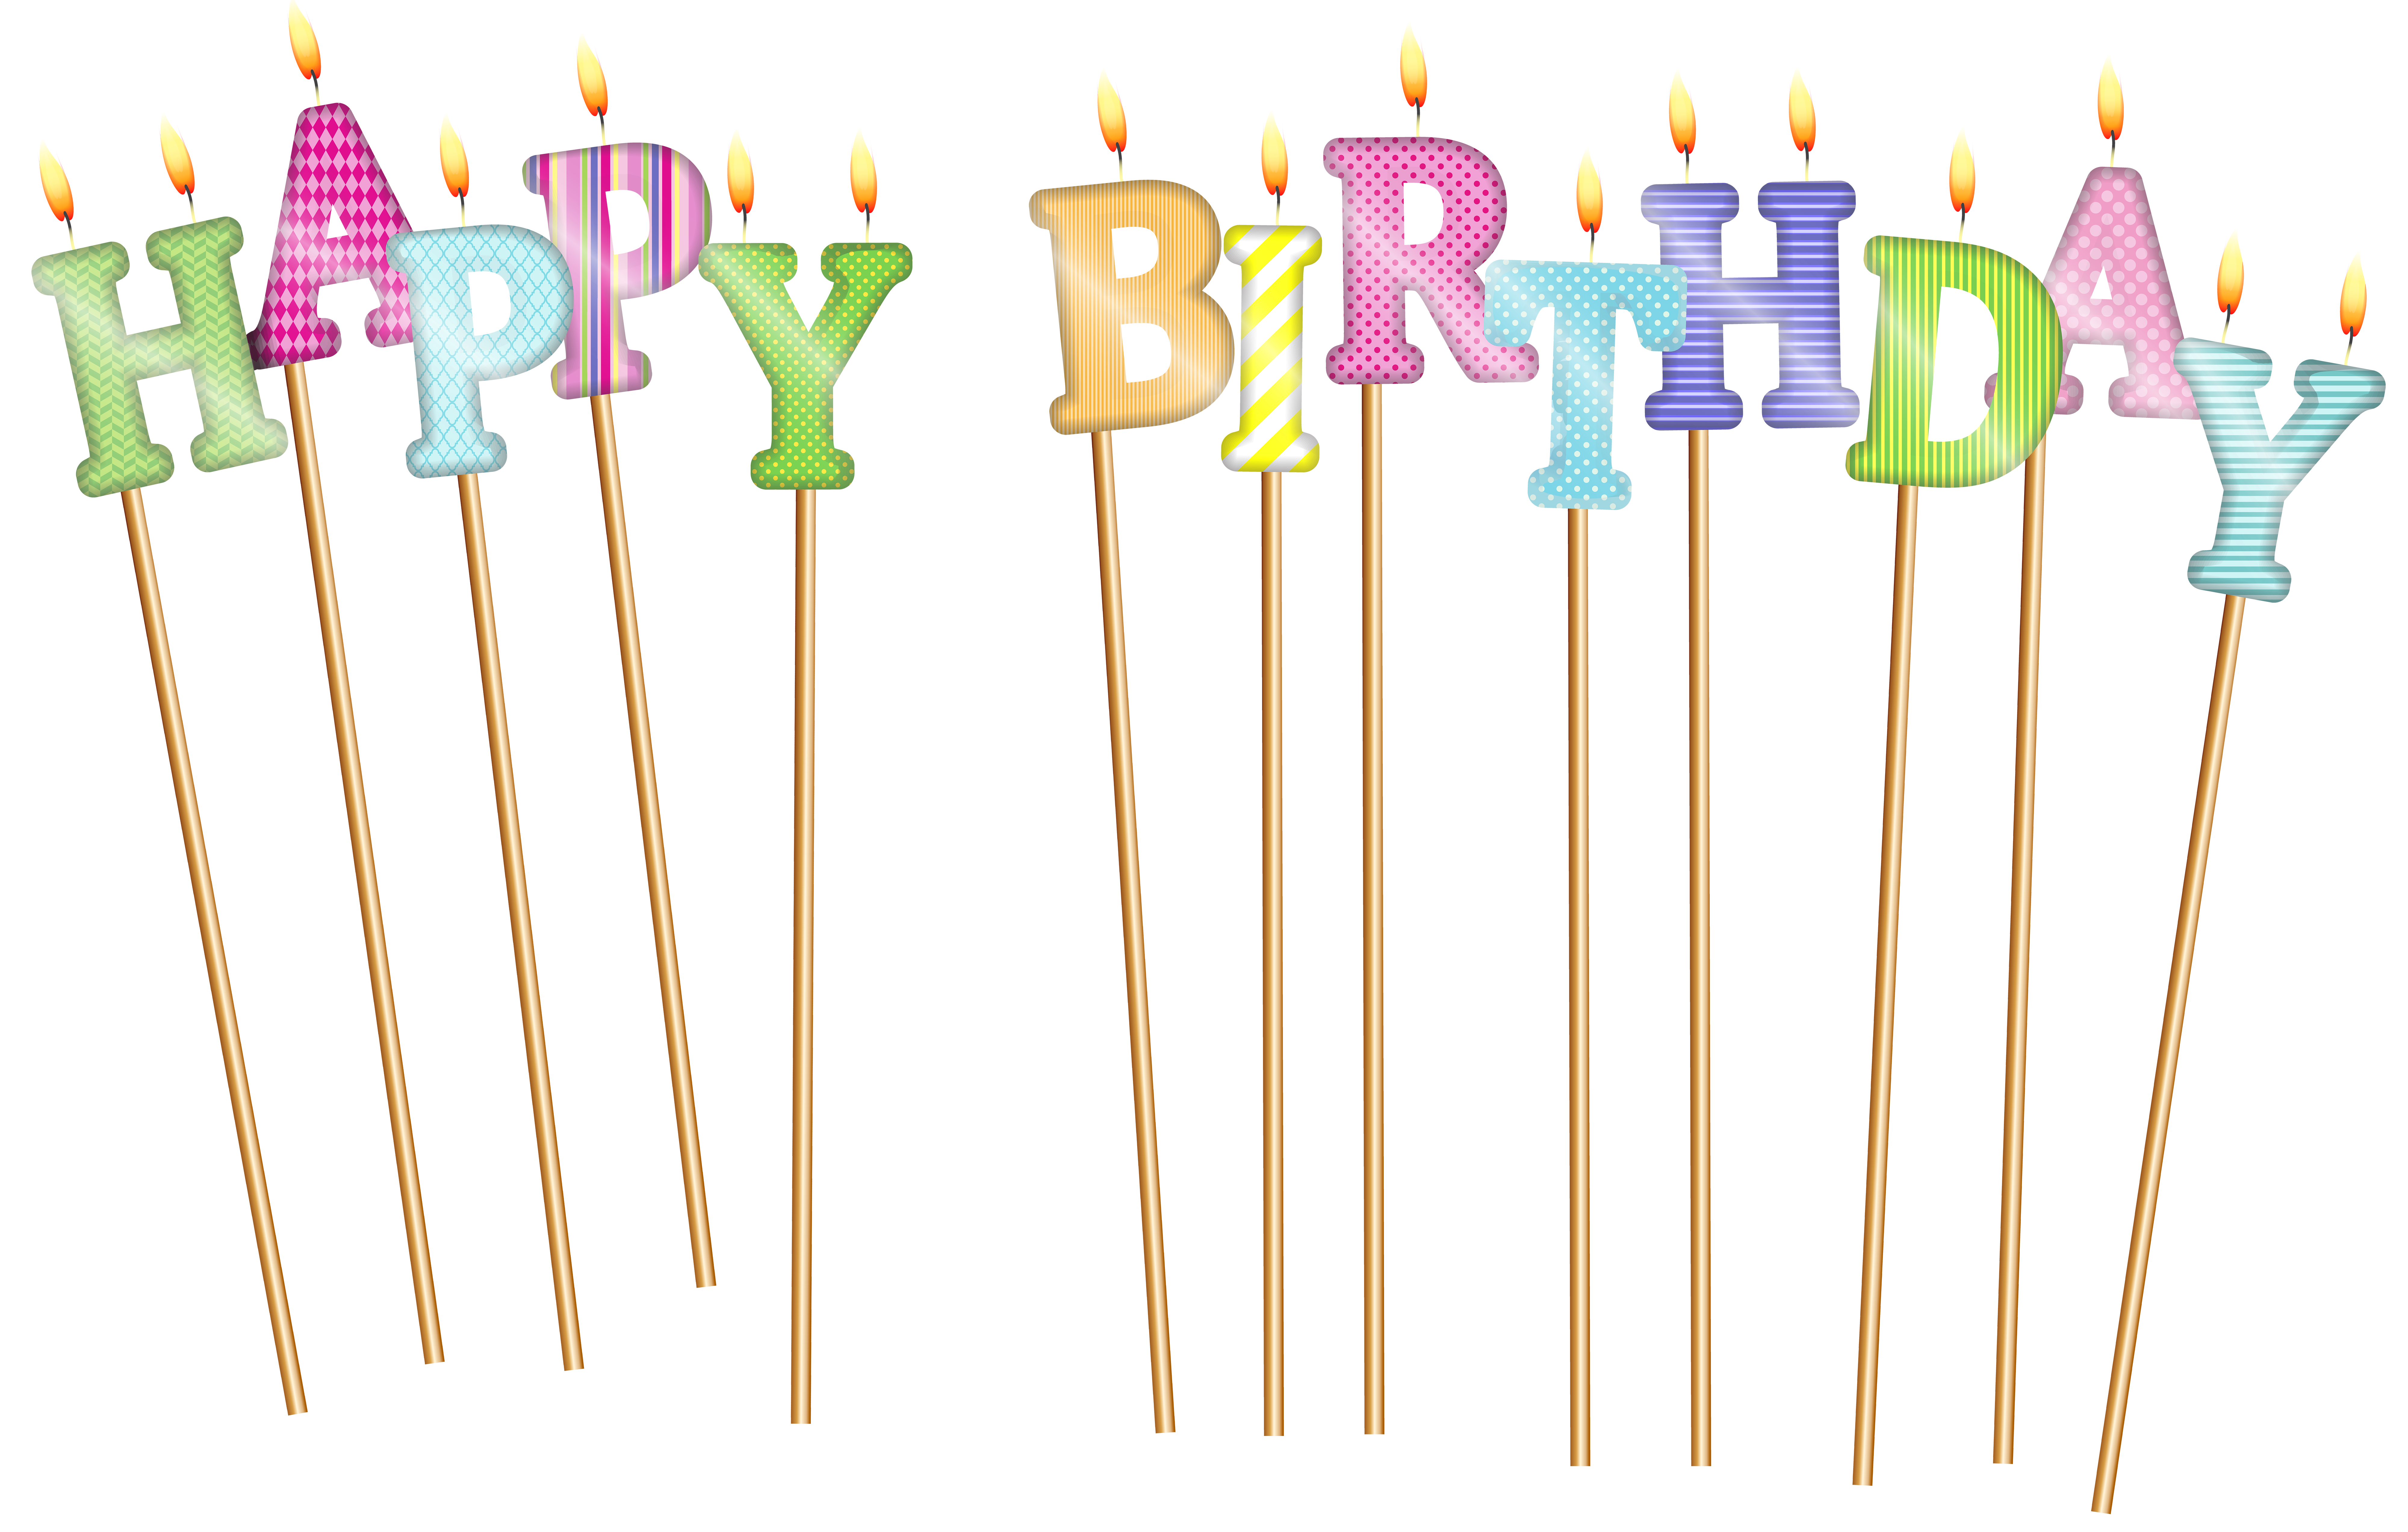 Happy Birthday Candles Free Download Transparent